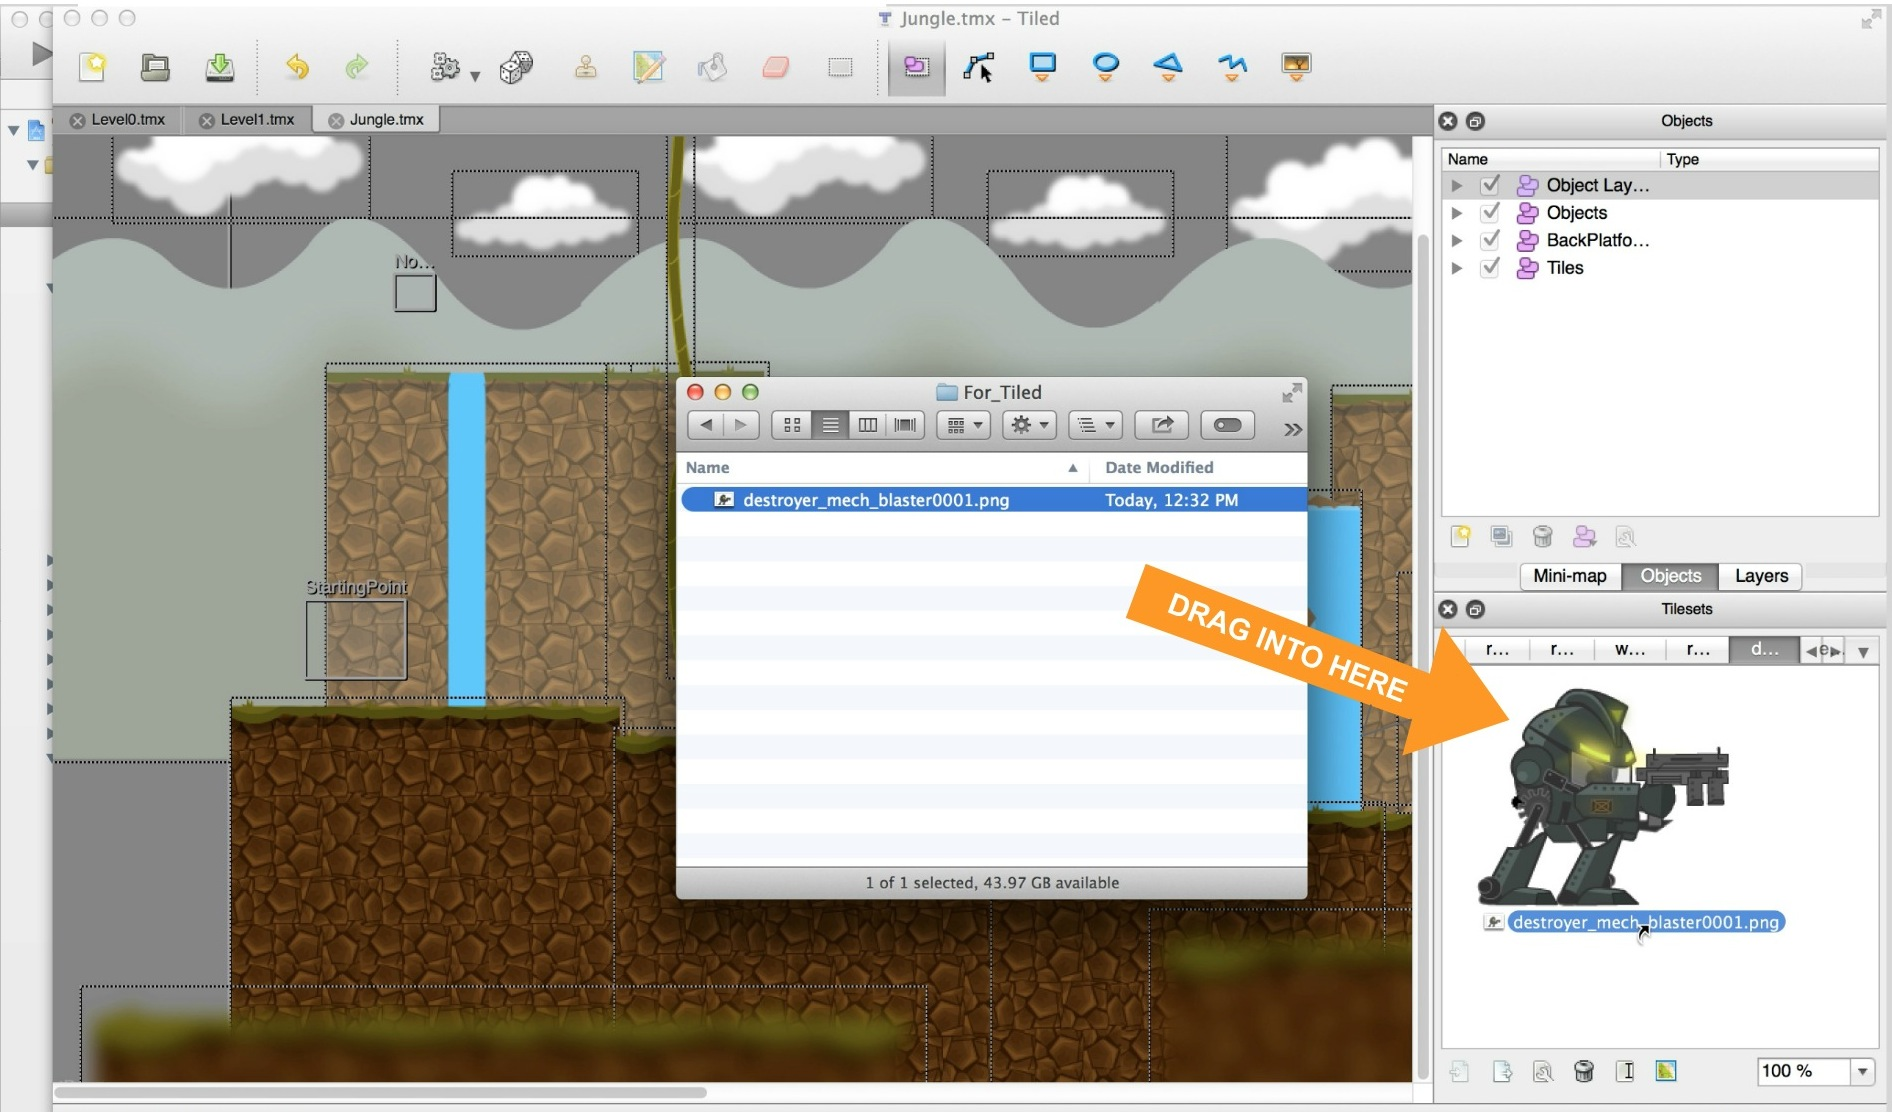 Step 5 - Integrating Objects with the Fantastic Worlds iOS Starter Kit